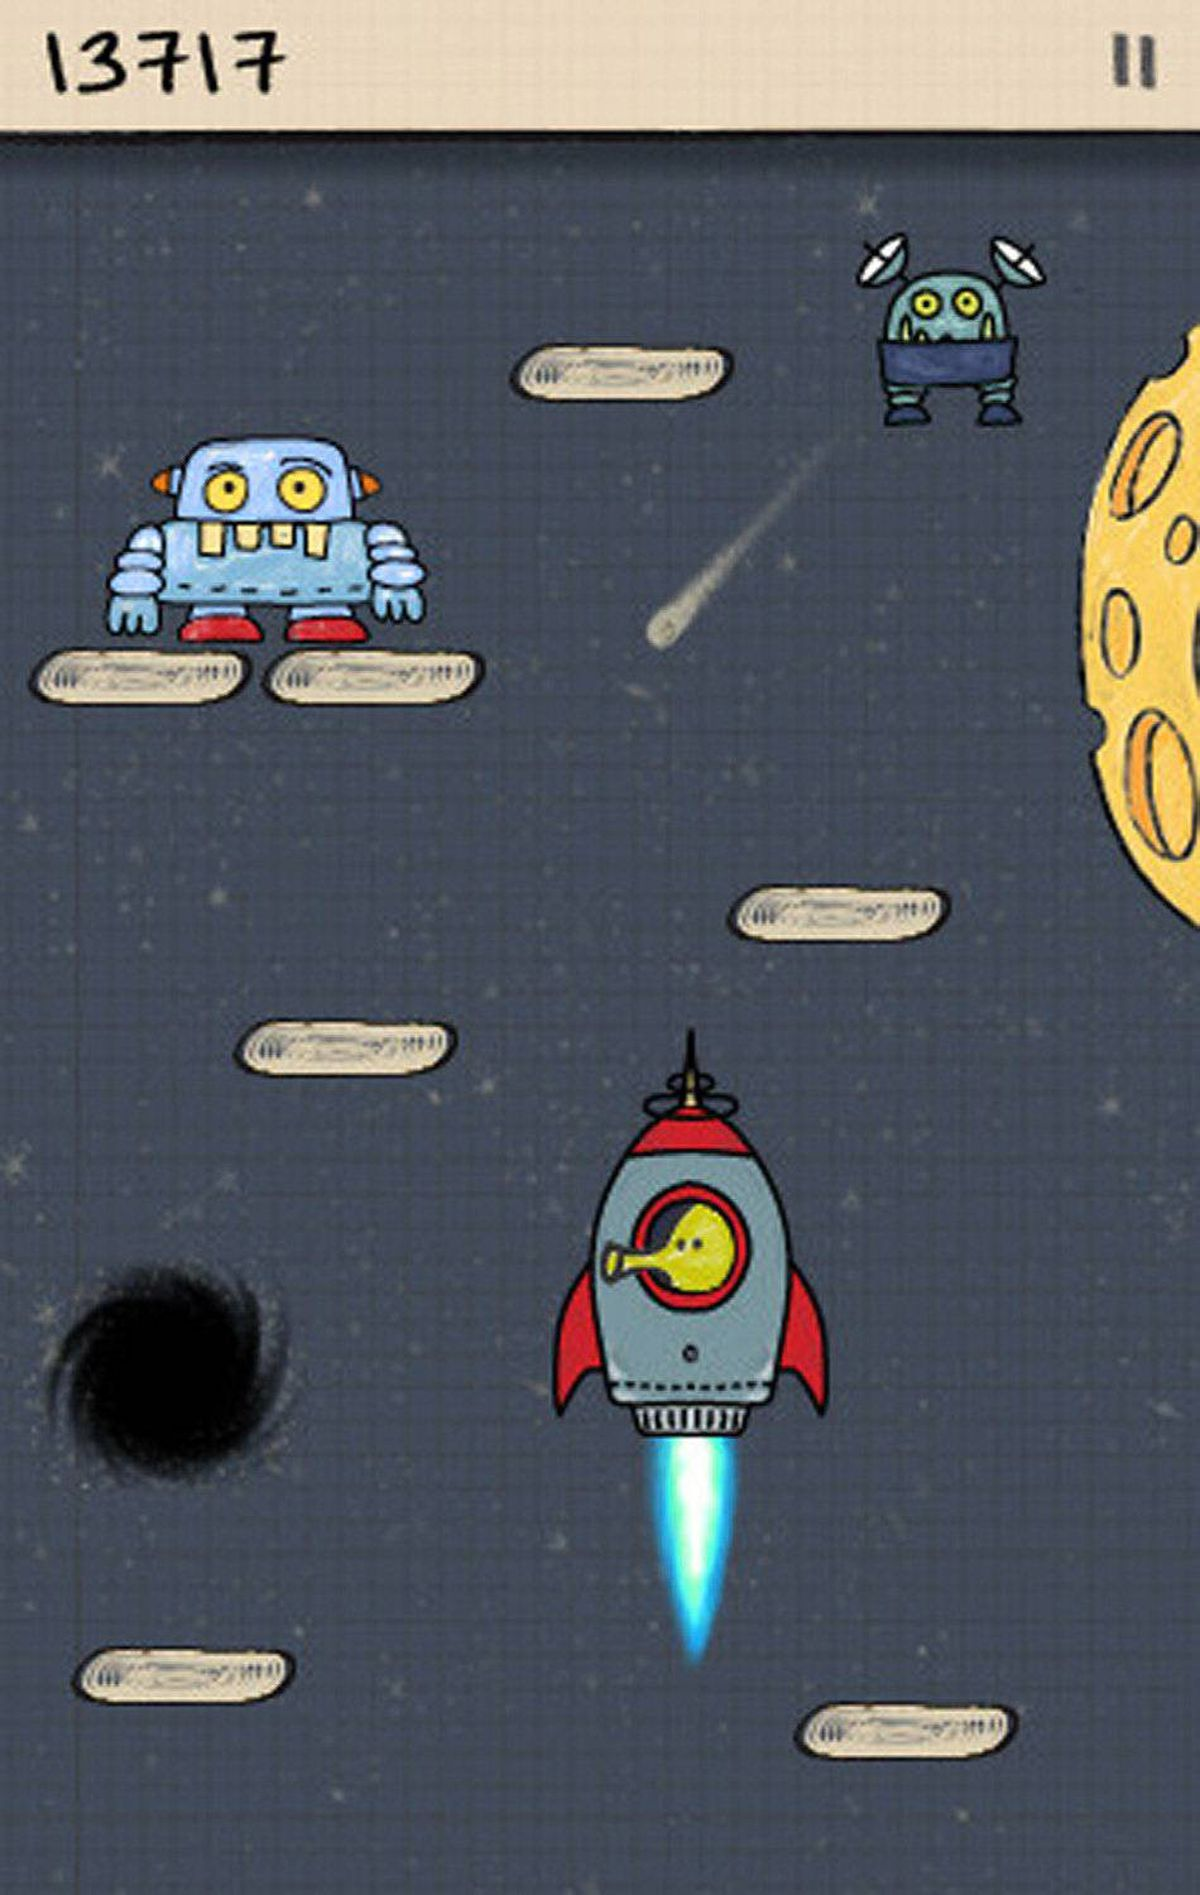 Doodle Jump (iPad/iPhone/iPod touch) Doodle Jump was one of the first and best games released for iOS. It's easy to learn but never boring. The star of the game is The Doodler, a strange four-legged creature who never stops jumping. Your goal is to guide the Doodler up a never-ending series of platforms by tilting your device to one side or another. Steer clear of UFOs and monsters that pop up along the way. Various objects help The Doodler go higher, including springs, jet packs, propeller hats, and trampolines. If you're lucky you'll find a rocket or two. The game ends if The Doodler falls and touches the bottom of the screen, or if he jumps into a monster, a black hole, or a UFO. ($0.99, limasky.com, also available: Doodle Jump HD for iPad: $2.99, sold separately.